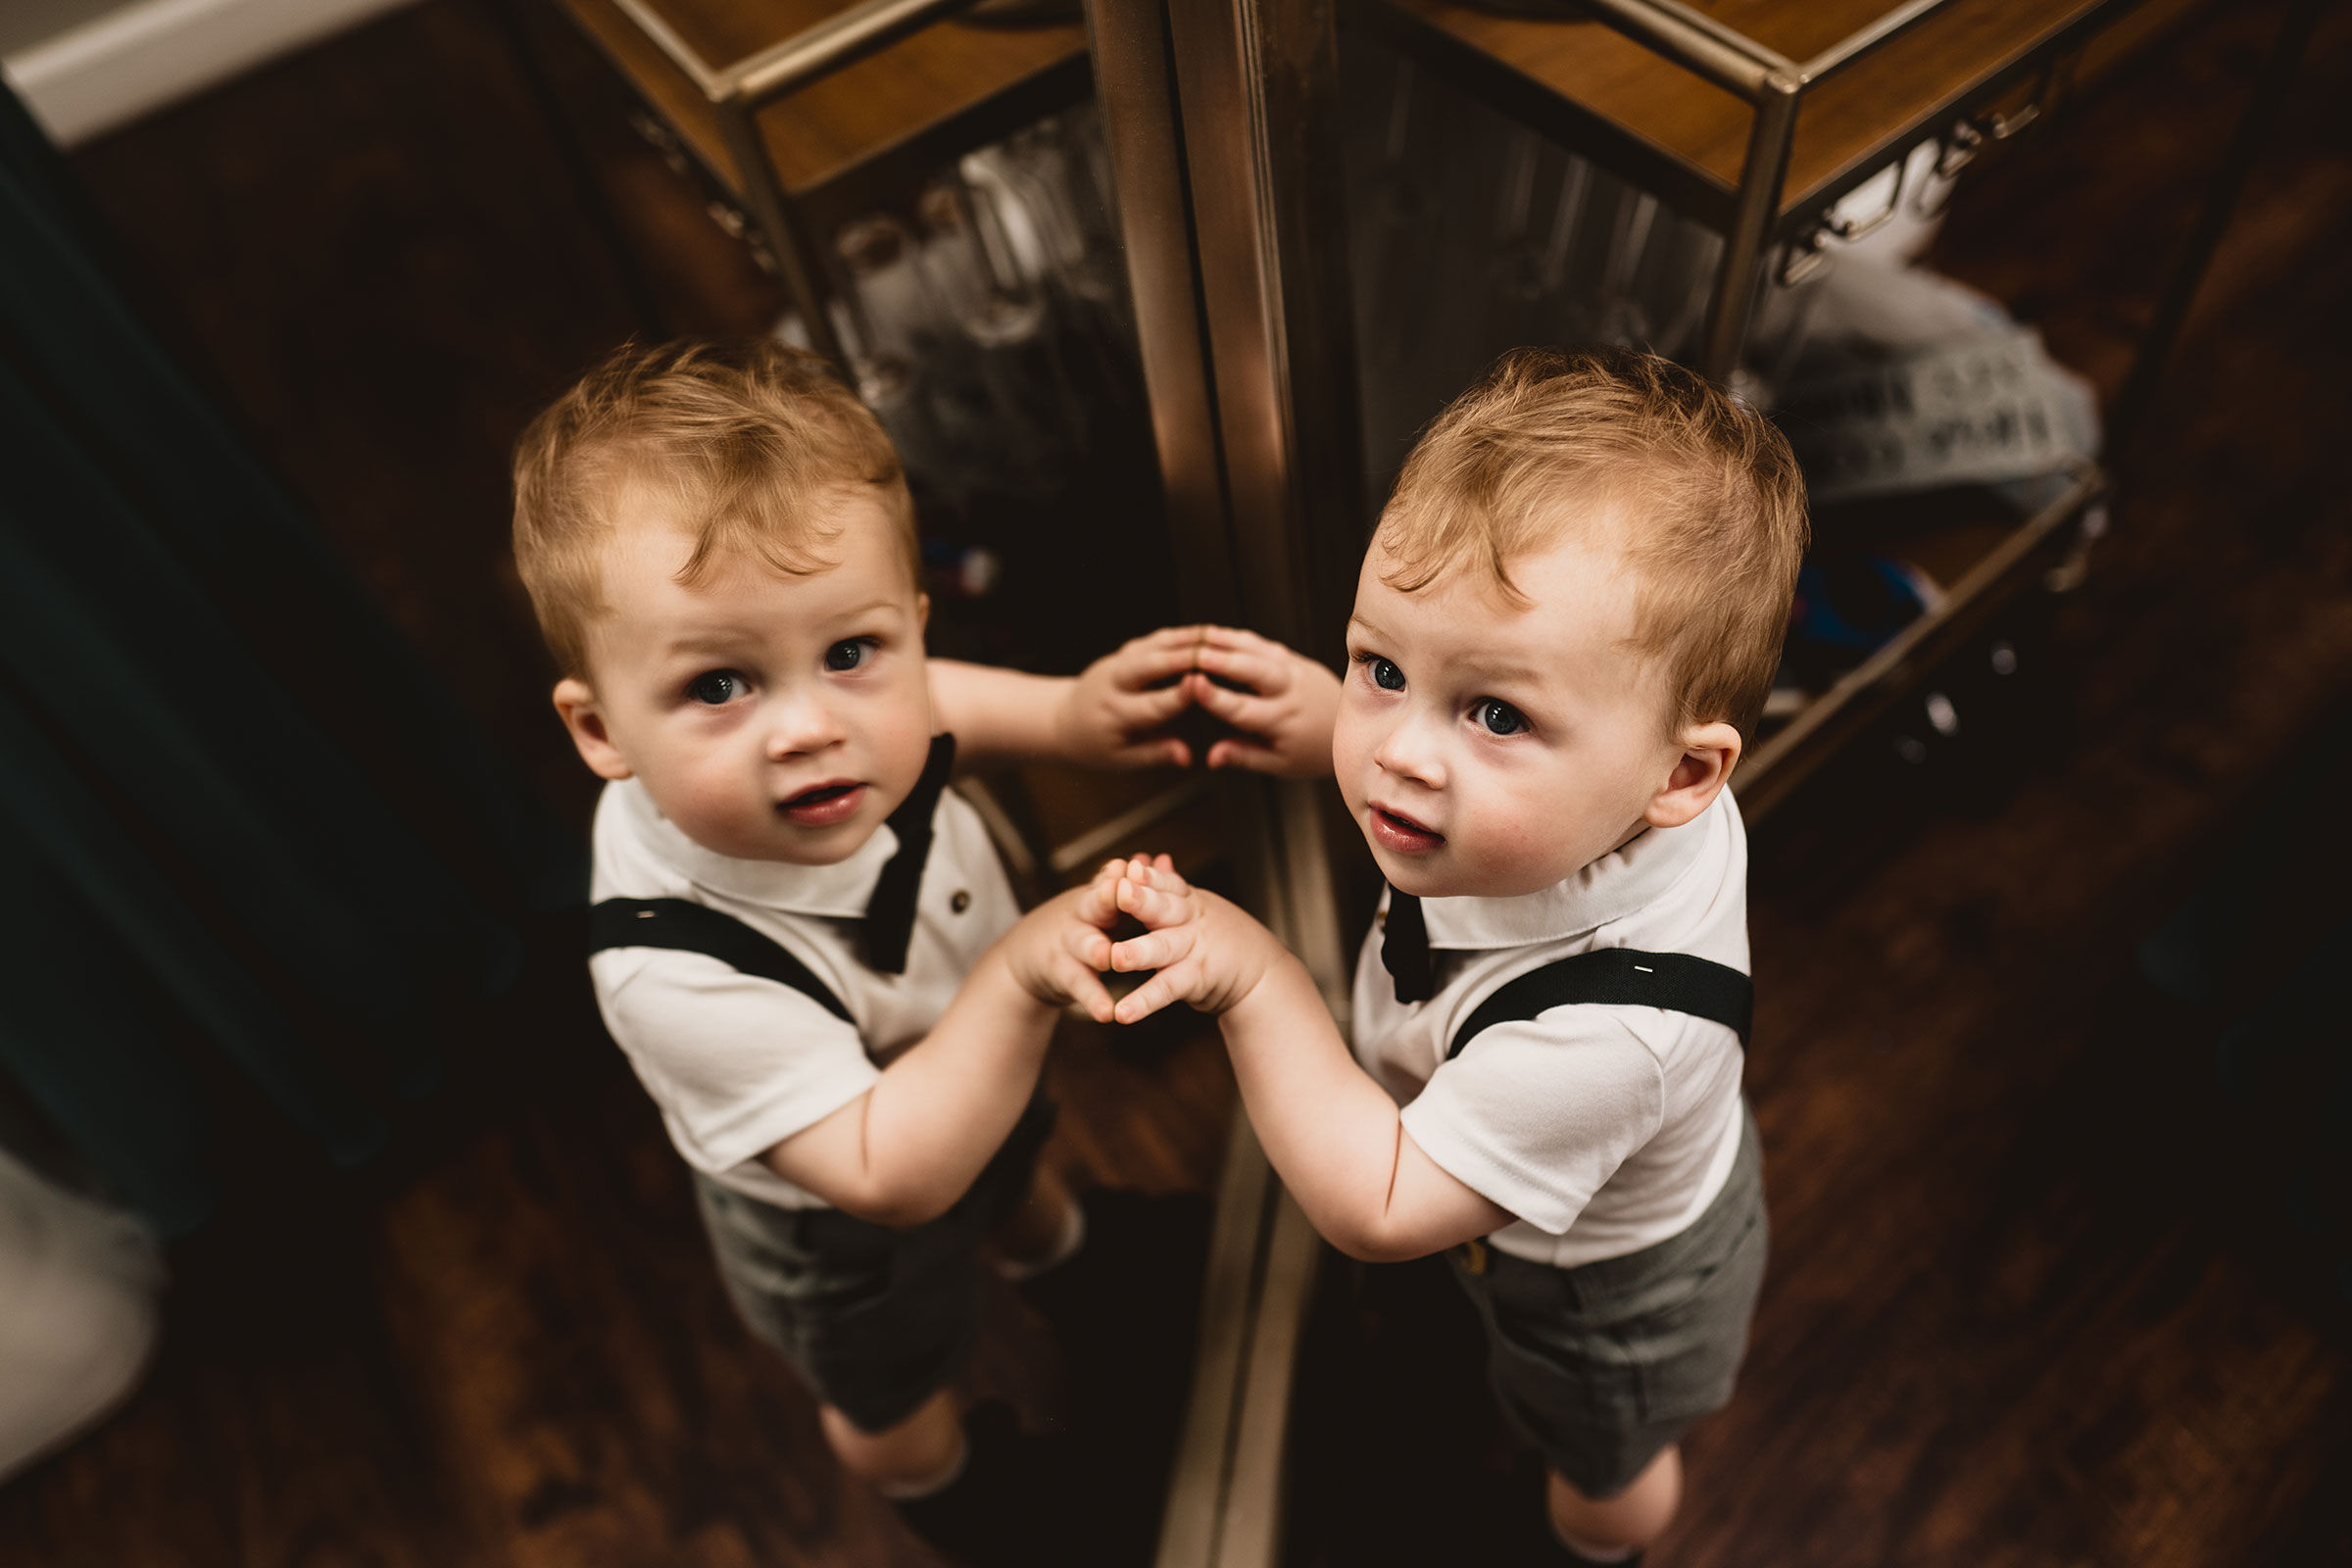 brides-son-looking-at-reflection-in-mirror-decades-event-center-building-desmoines-iowa-raelyn-ramey-photography..jpg